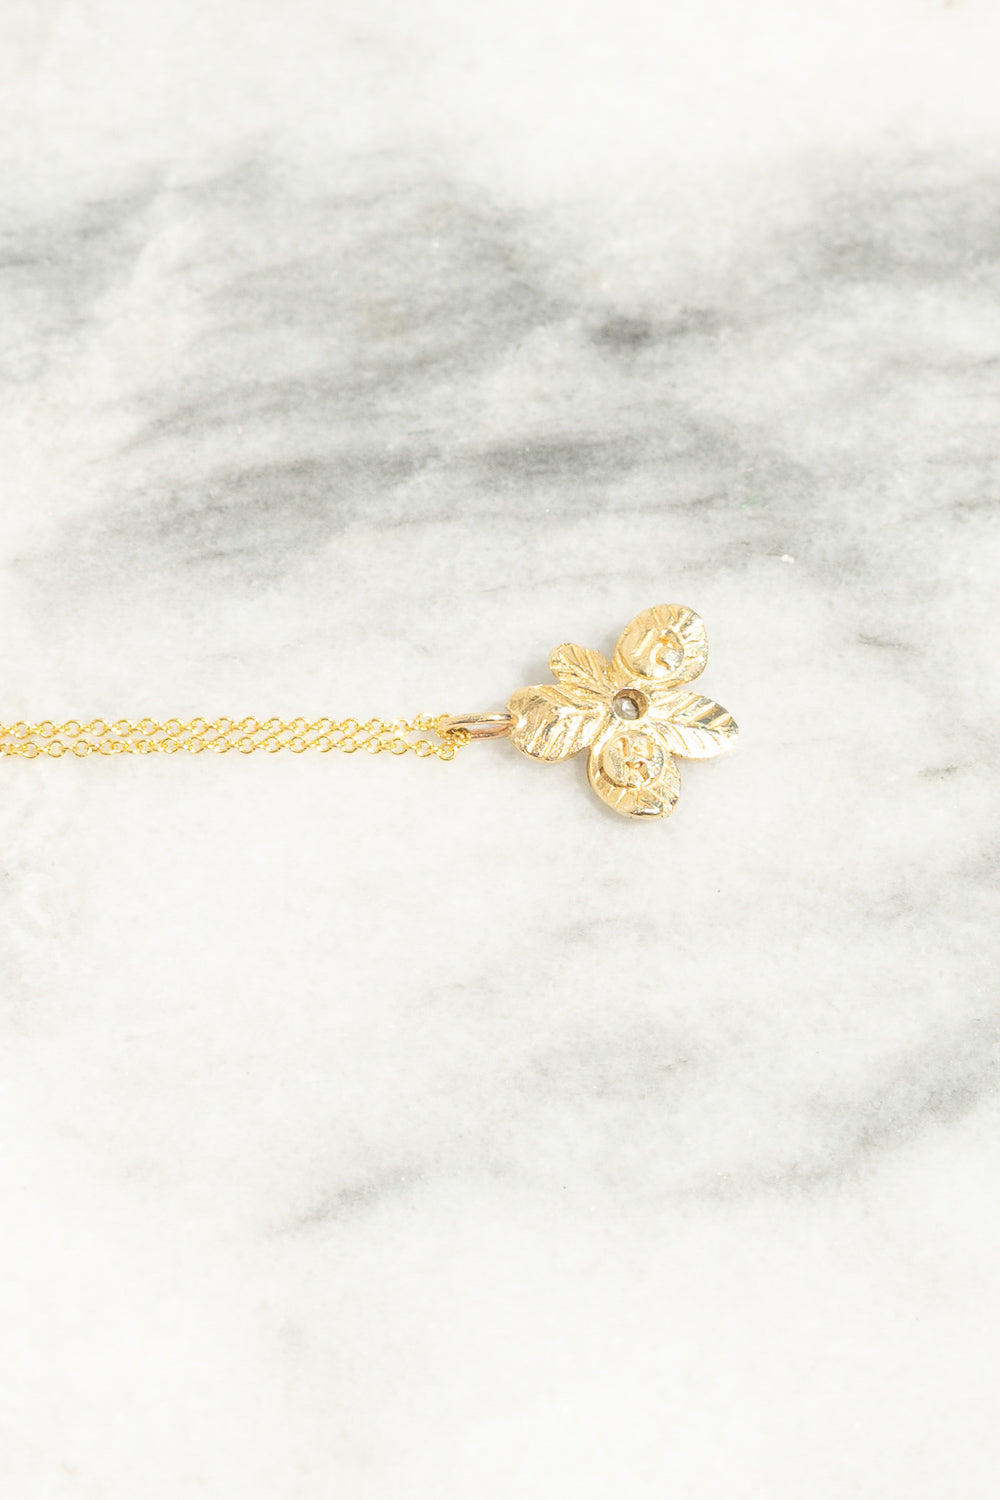 back view of gold flower charm pendant necklace